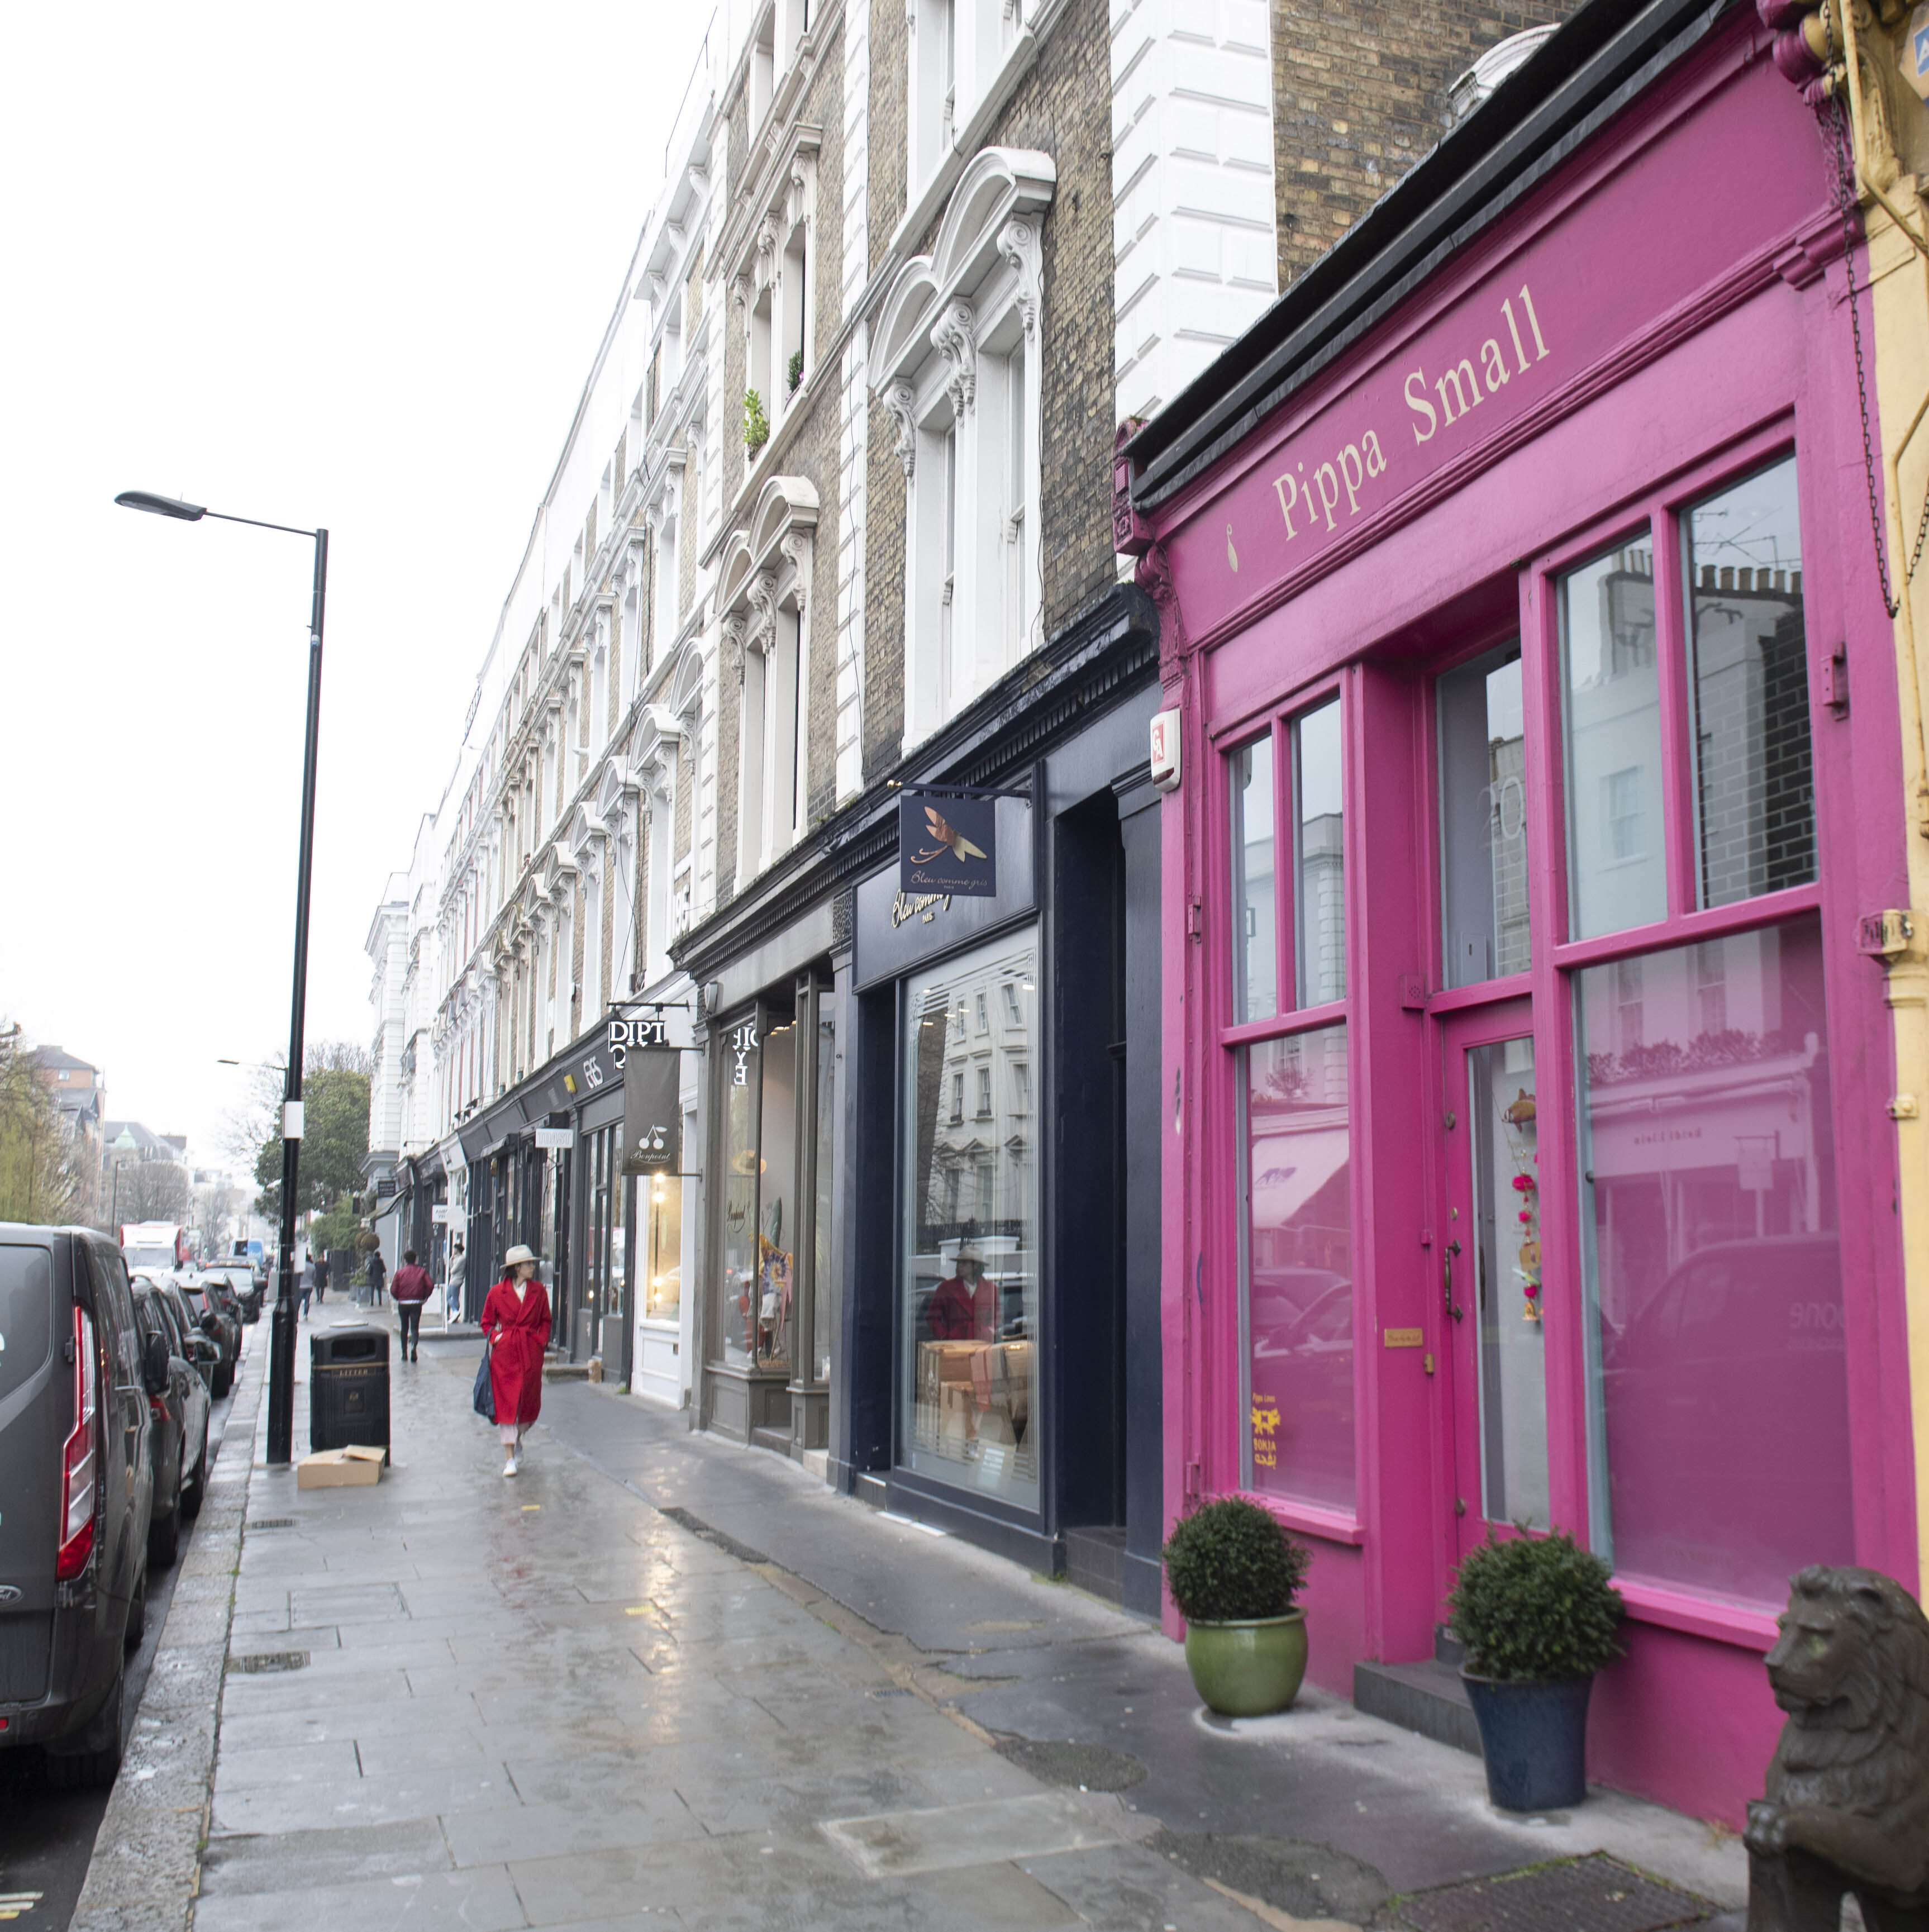 Photo by: KGC-520/STAR MAX/IPx 2020 3/19/20 Fashion Retailers are closing down and emptying their shelves on Westbourne Grove in Notting Hill including Gwyneth Paltrow's pop up clothes shop Goop as Coronavirus fears spread in London.